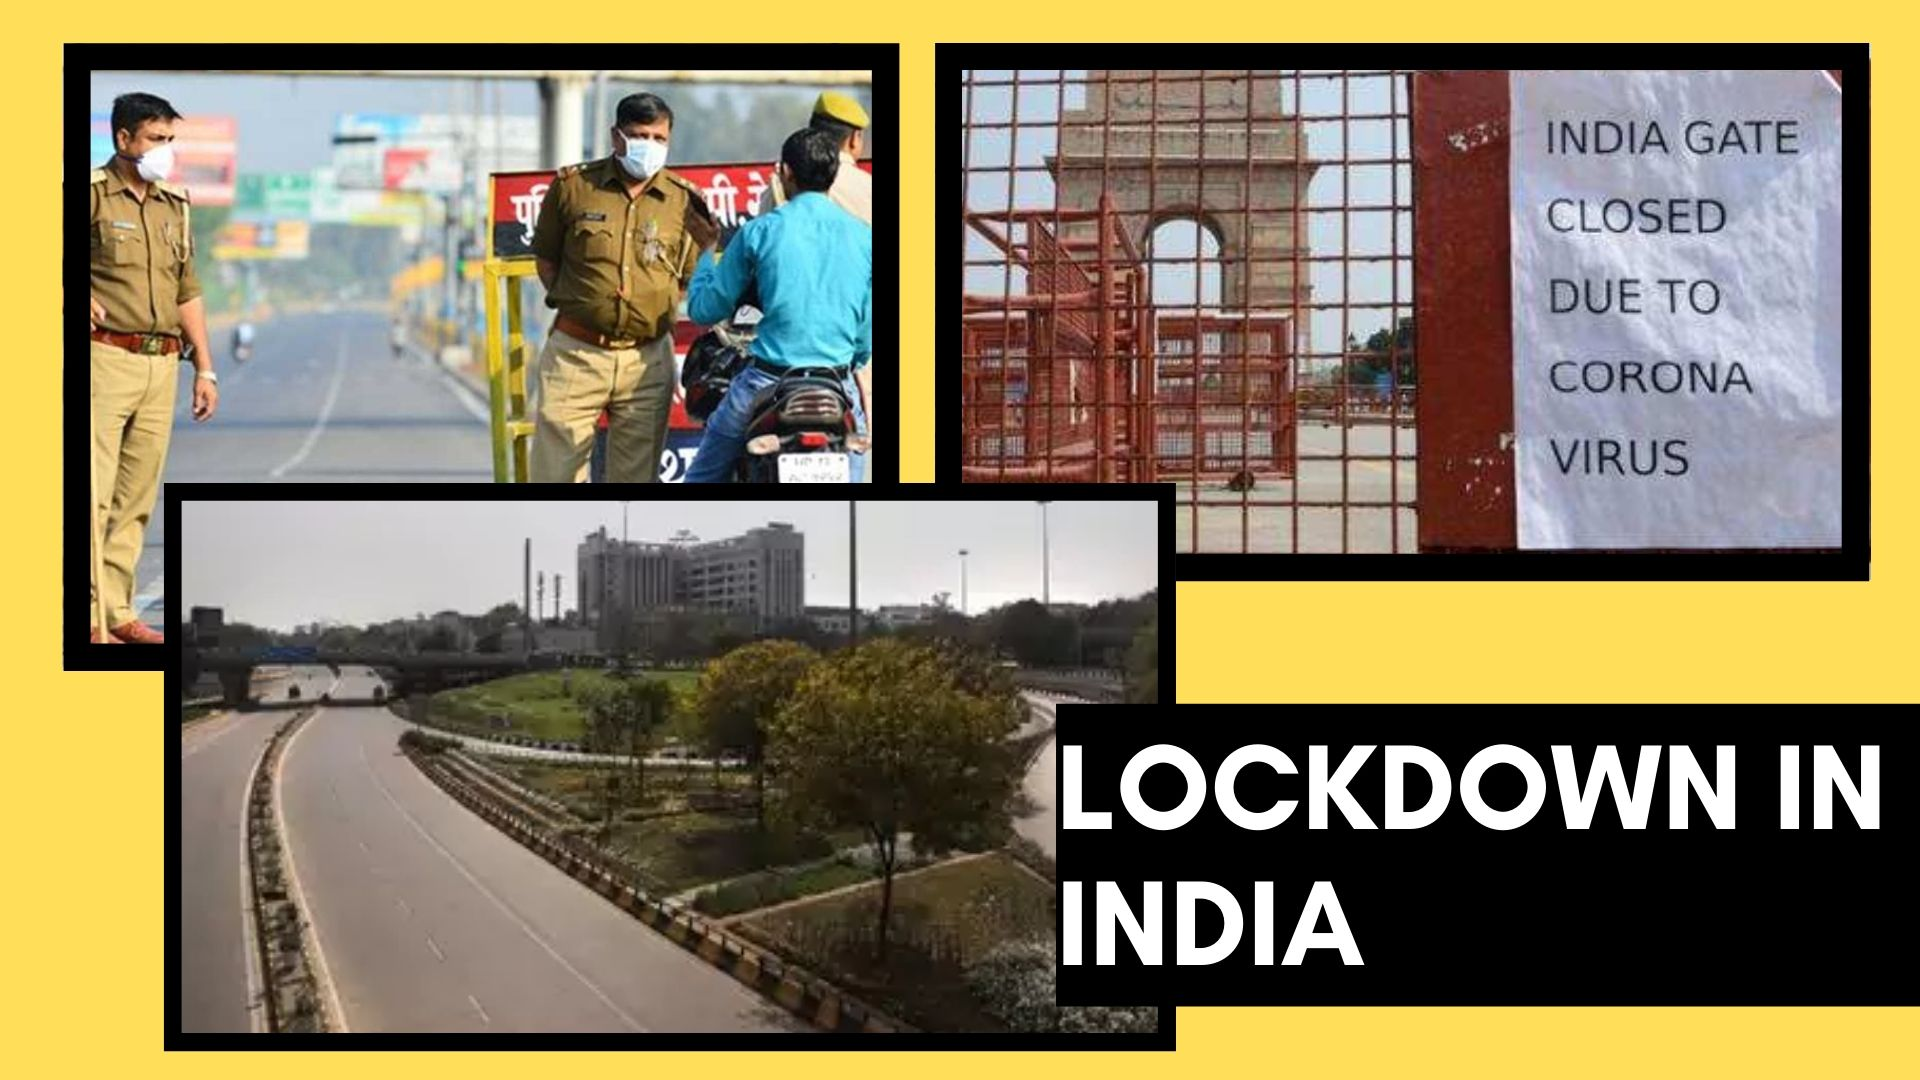 LOCKDOWN IN INDIA: 80 CITIES IN INDIA UNDER LOCKDOWN TILL 31st MARCH 2020